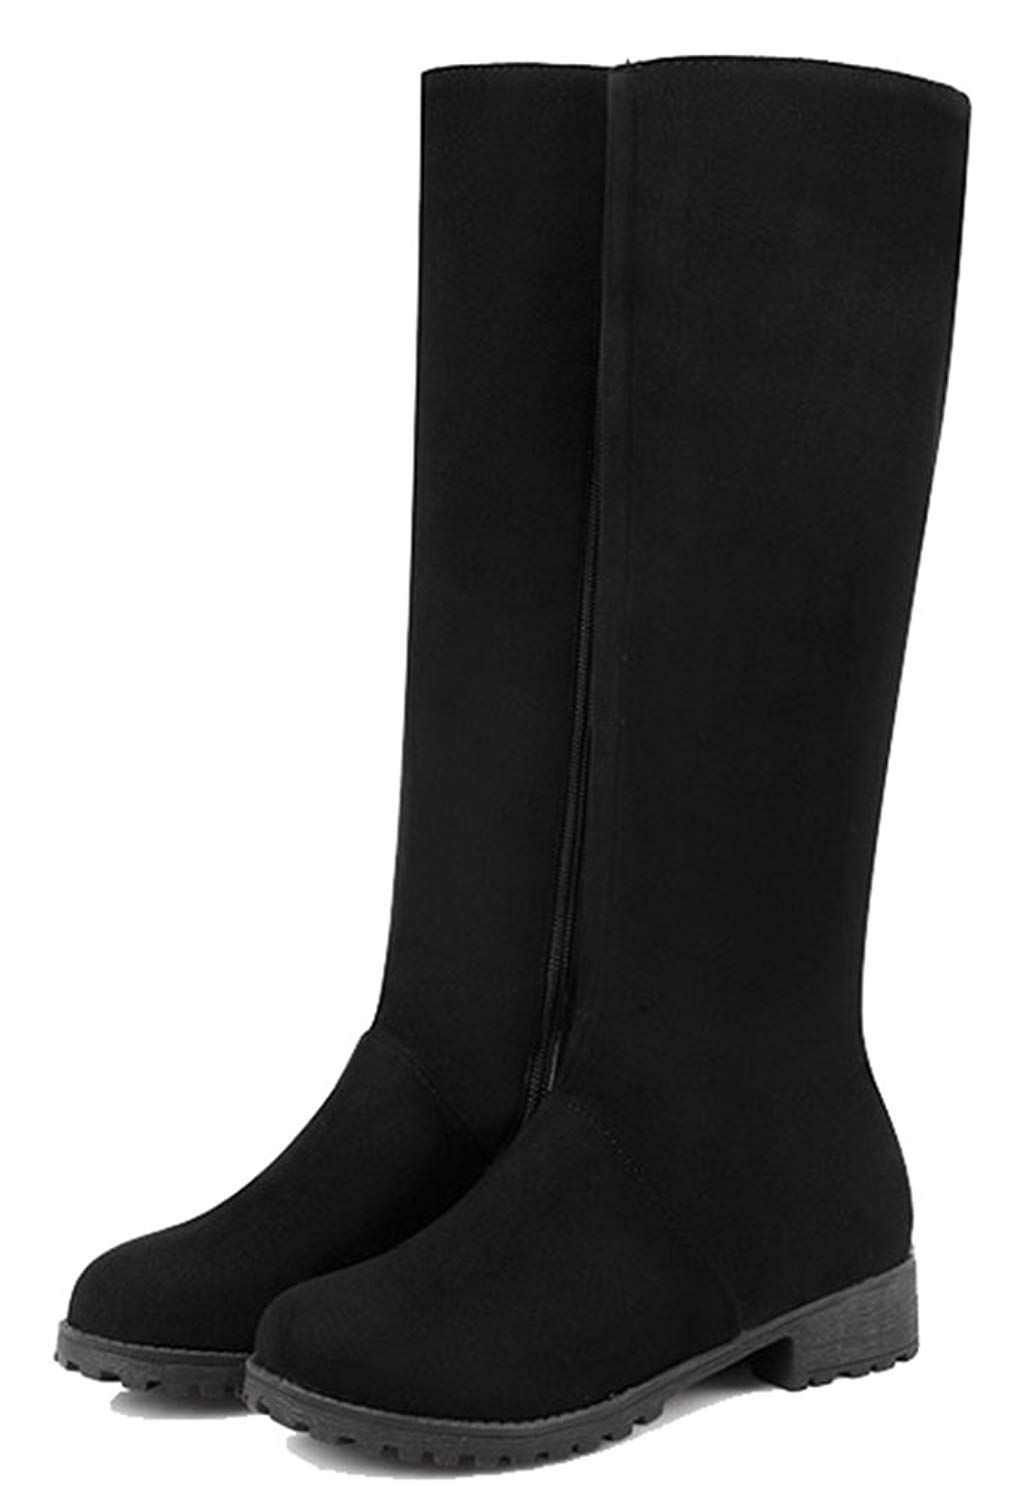 c8946a7f7d47 SHOWHOW Women s Simple Microsuede Low Heel Side Zipper Knee High Boots    For more information